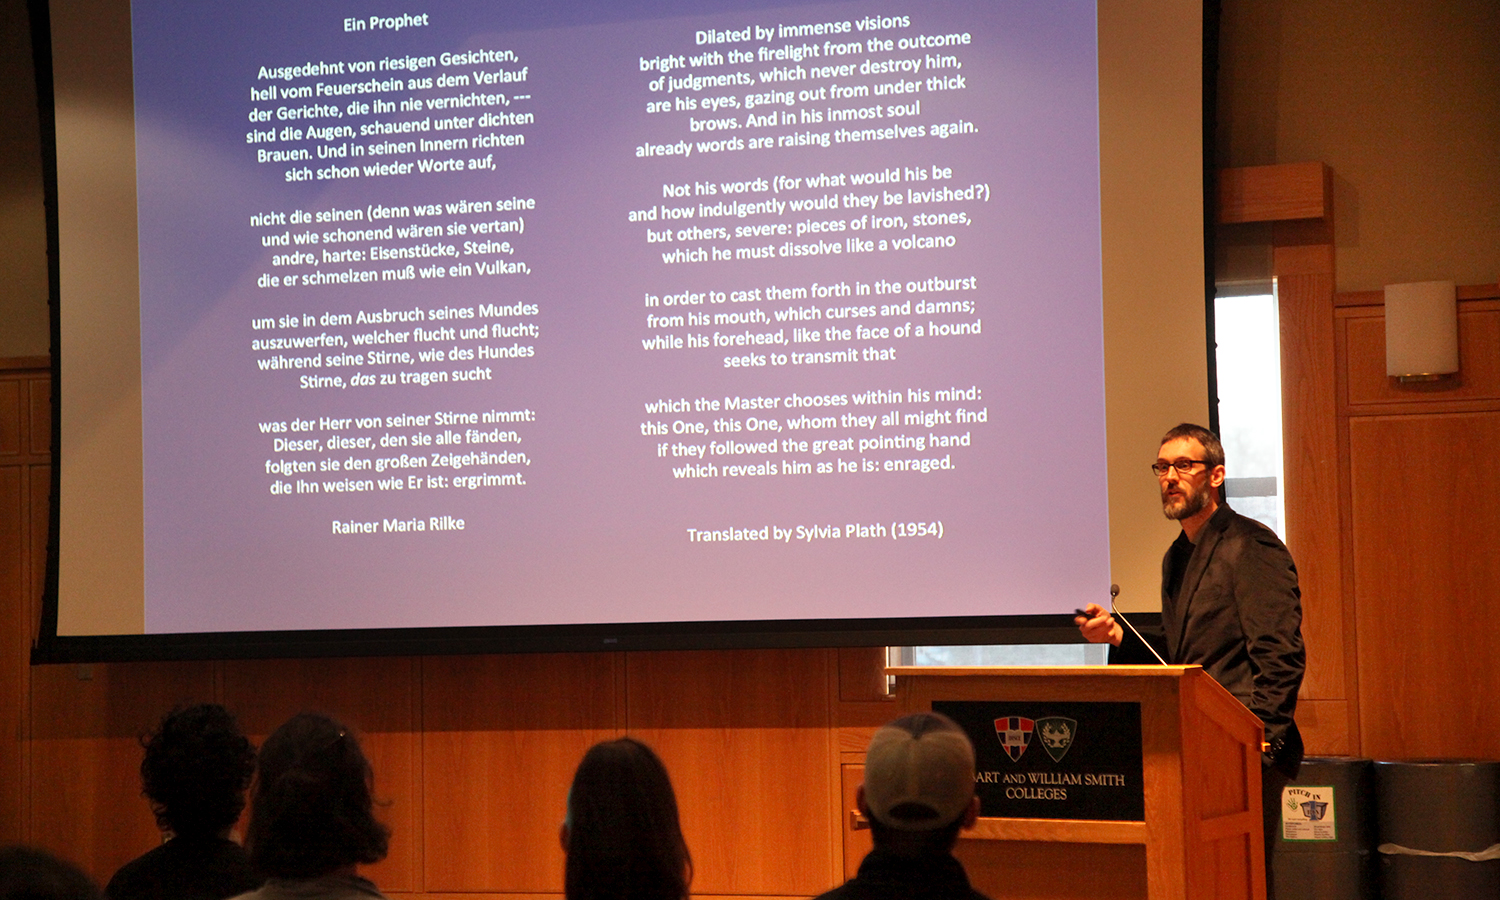 "Associate professor of English at the State University of New York at Fredonia Birger Vanwesenbeeck discusses Sylvia Plath's translation of the 1908 poem by Rainer Maria Rilke: ""Ein Prophet"" during ""Plath Translates Rilke"" in the Sanford Room of Warren Hunting Smith Library."